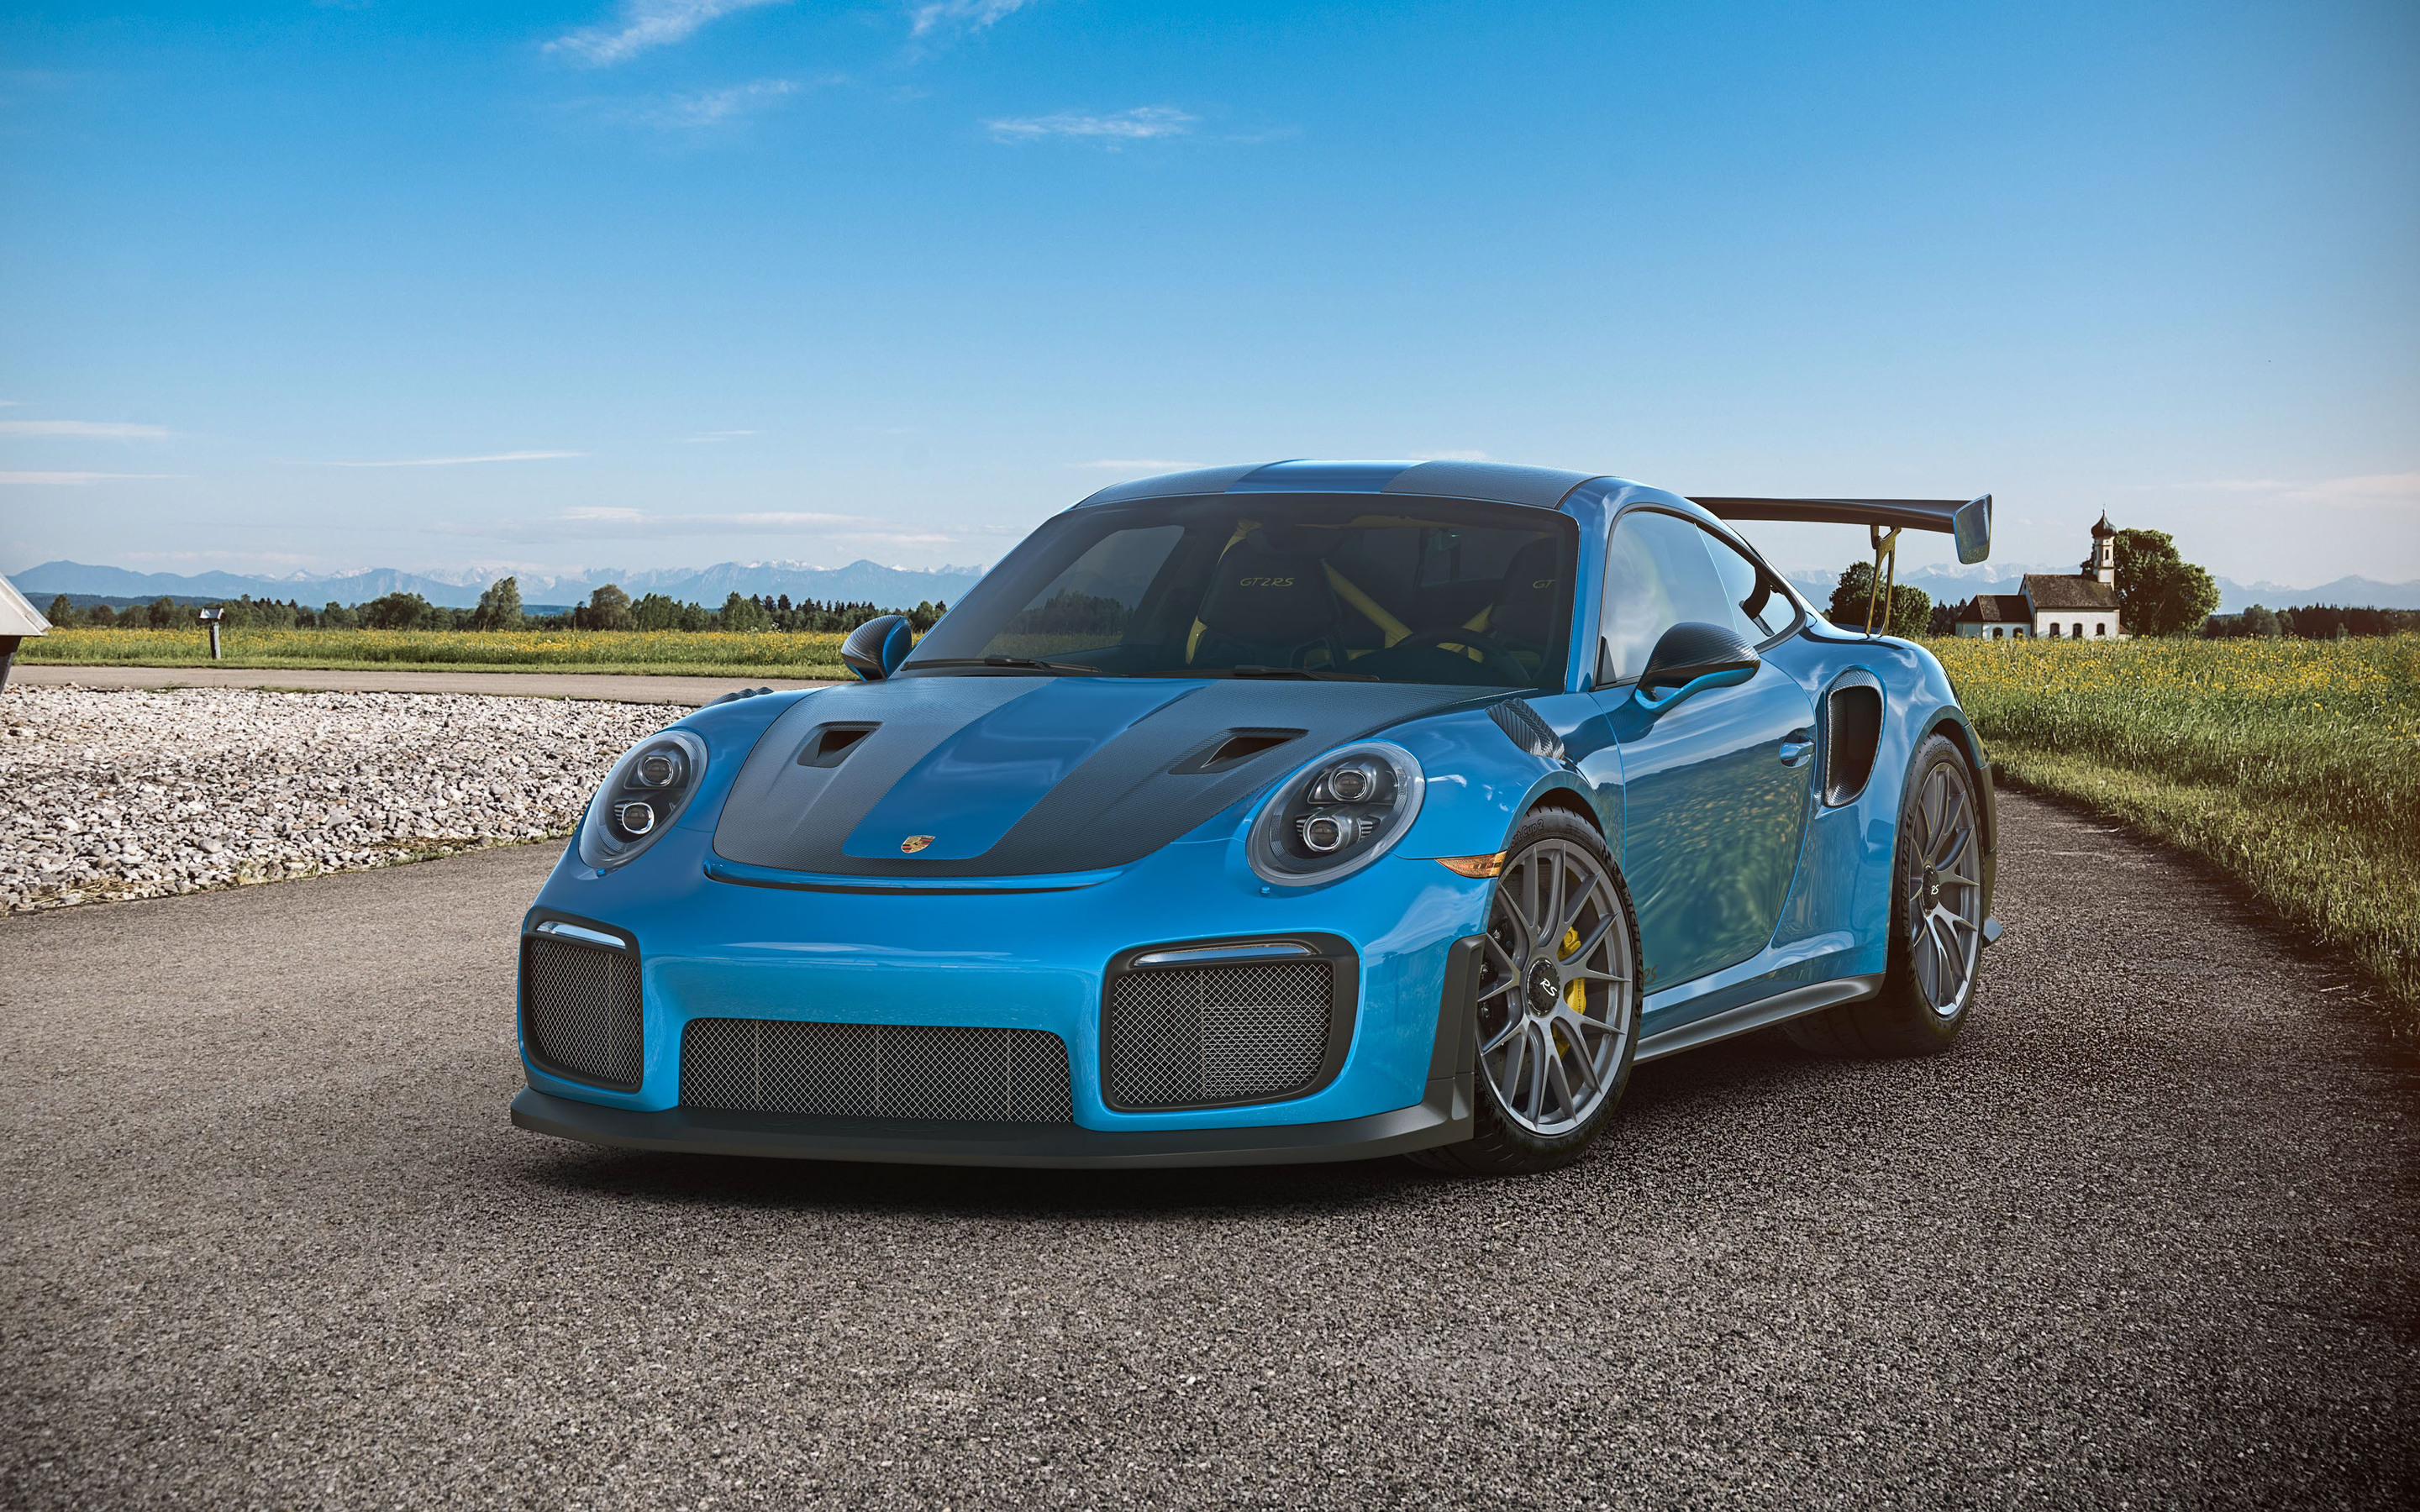 2880x1800 Cgi Porsche Gt2 Rs Macbook Pro Retina Hd 4k